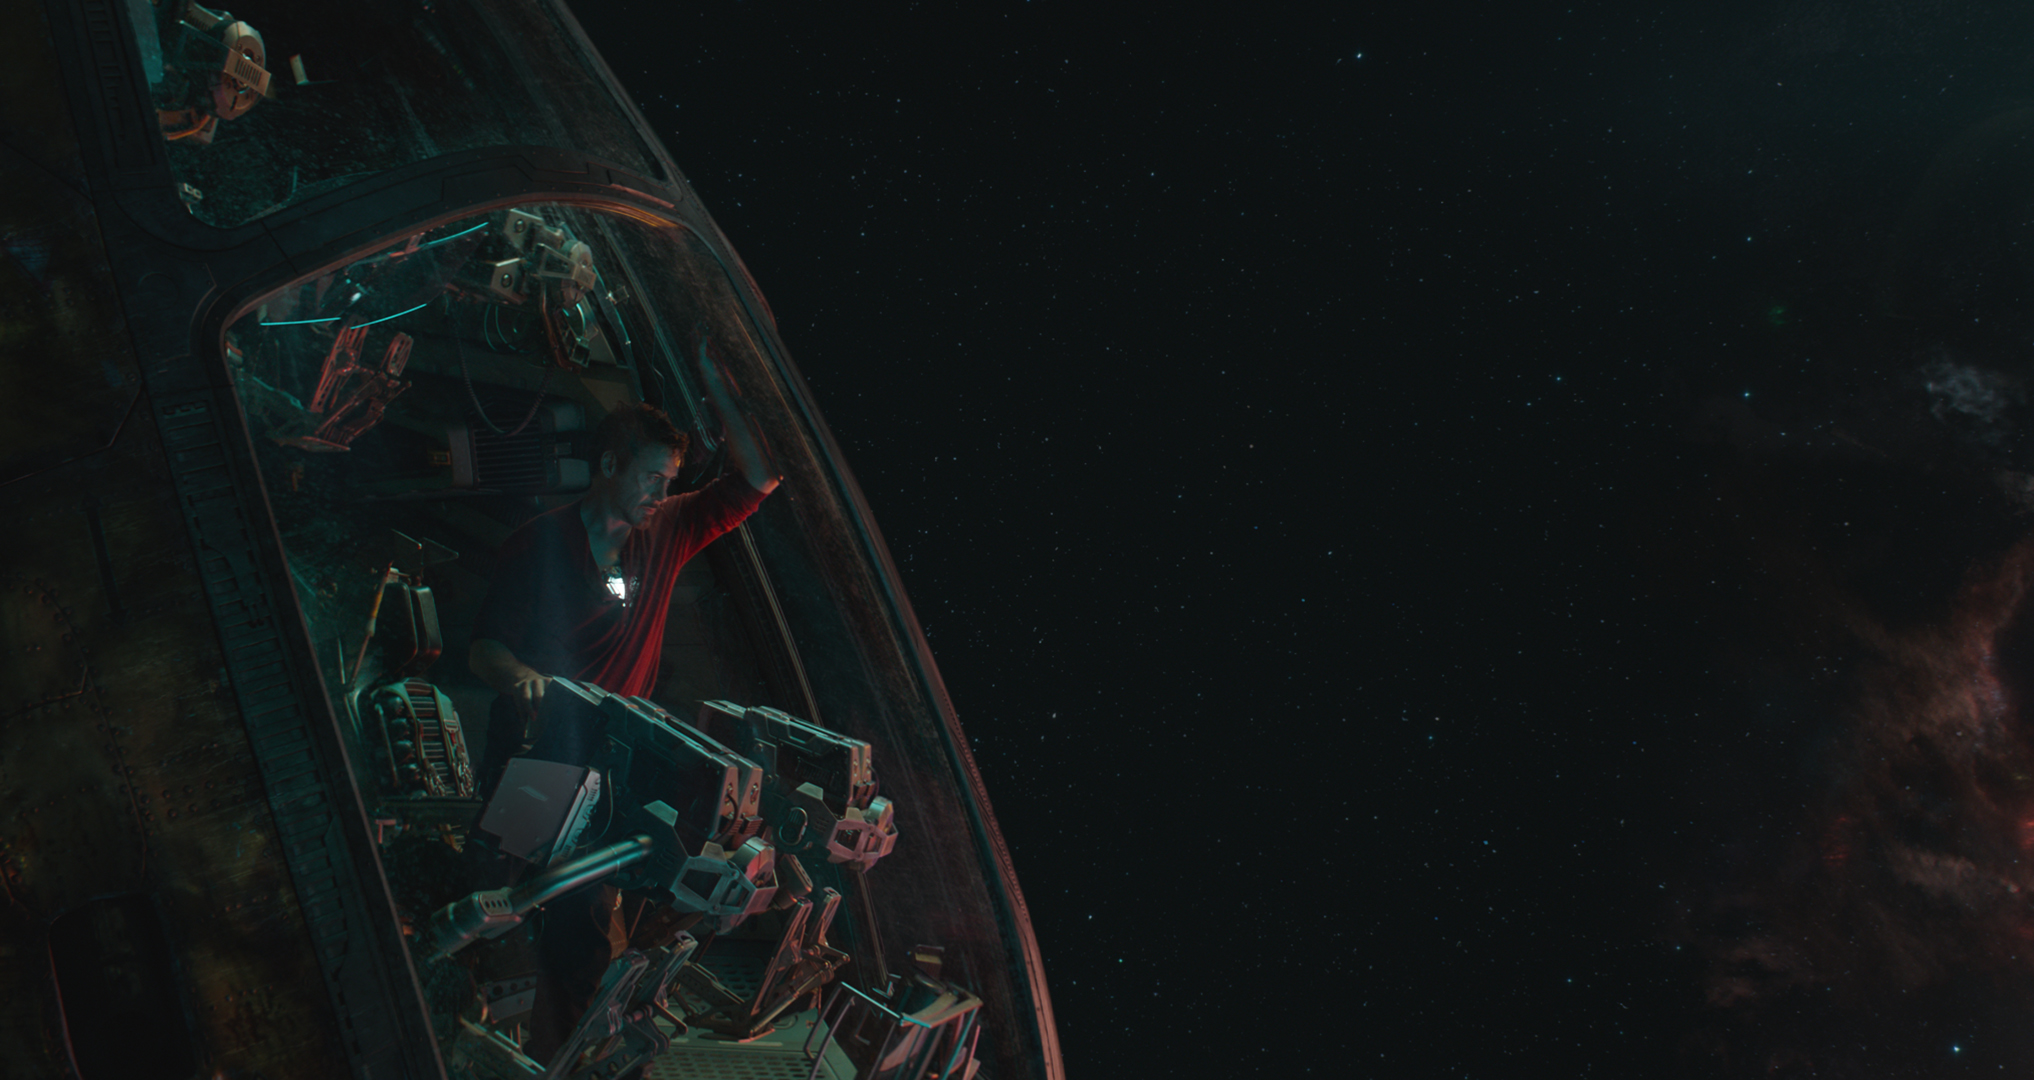 Avengers Endgame Images Tease Emotional Reunions and Team Ups 2034x1080